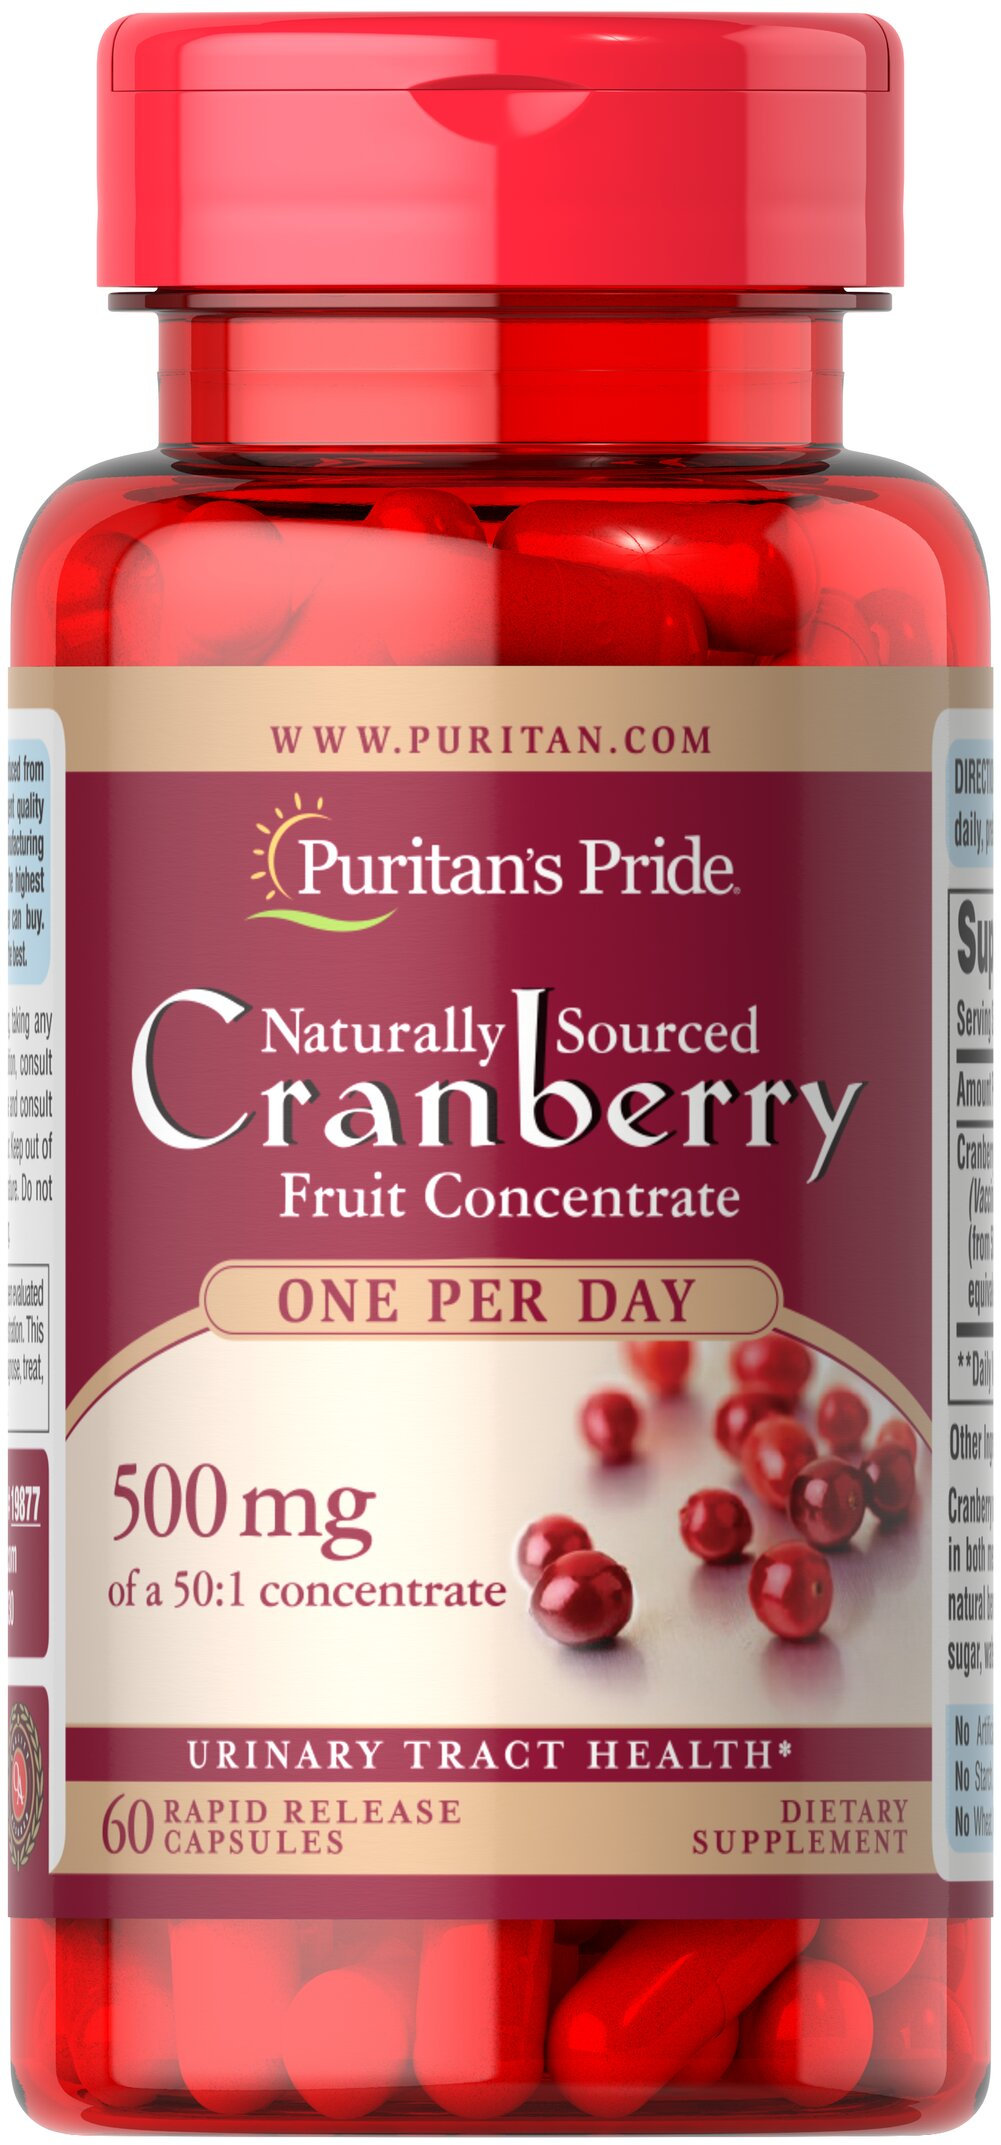 One A Day Cranberry <p>Equivalent to 25,000 mg of Cranberry Fruit per Capsule.</p><p>For years, health experts have recommended cranberry to help promote urinary tract health.**</p><p>Each dose provides the natural benefits of the whole cranberry without any preservatives, sugars, water, flavoring or color.</p> 60 Capsules 500 mg $15.99